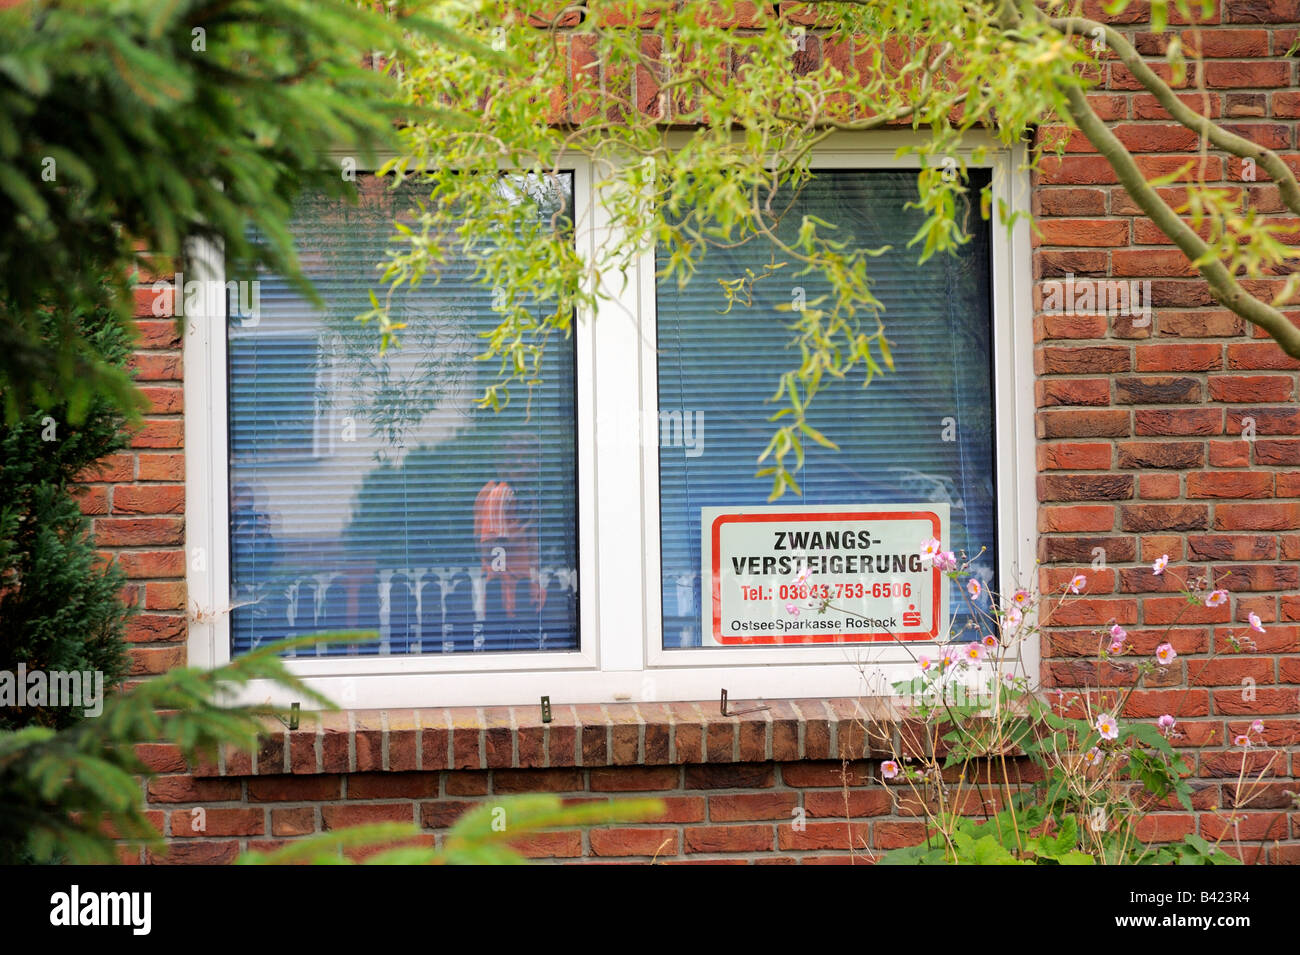 a house to be put up for compulsory sale in Mecklenburg-Western Pomerania, germany. - Stock Image